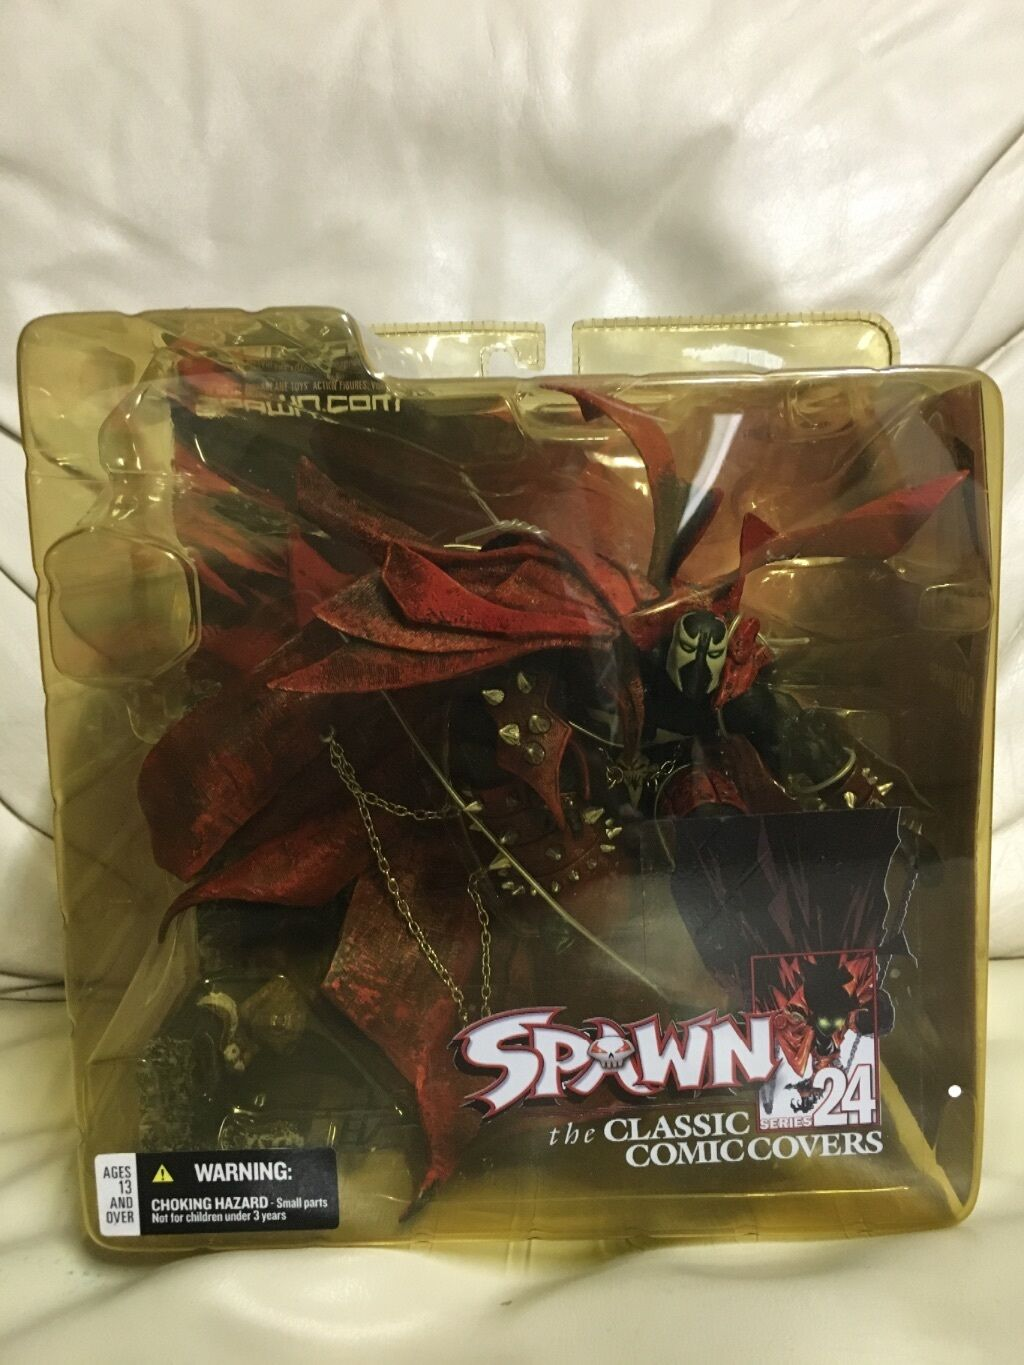 Spawn series 24 the classic comic covers